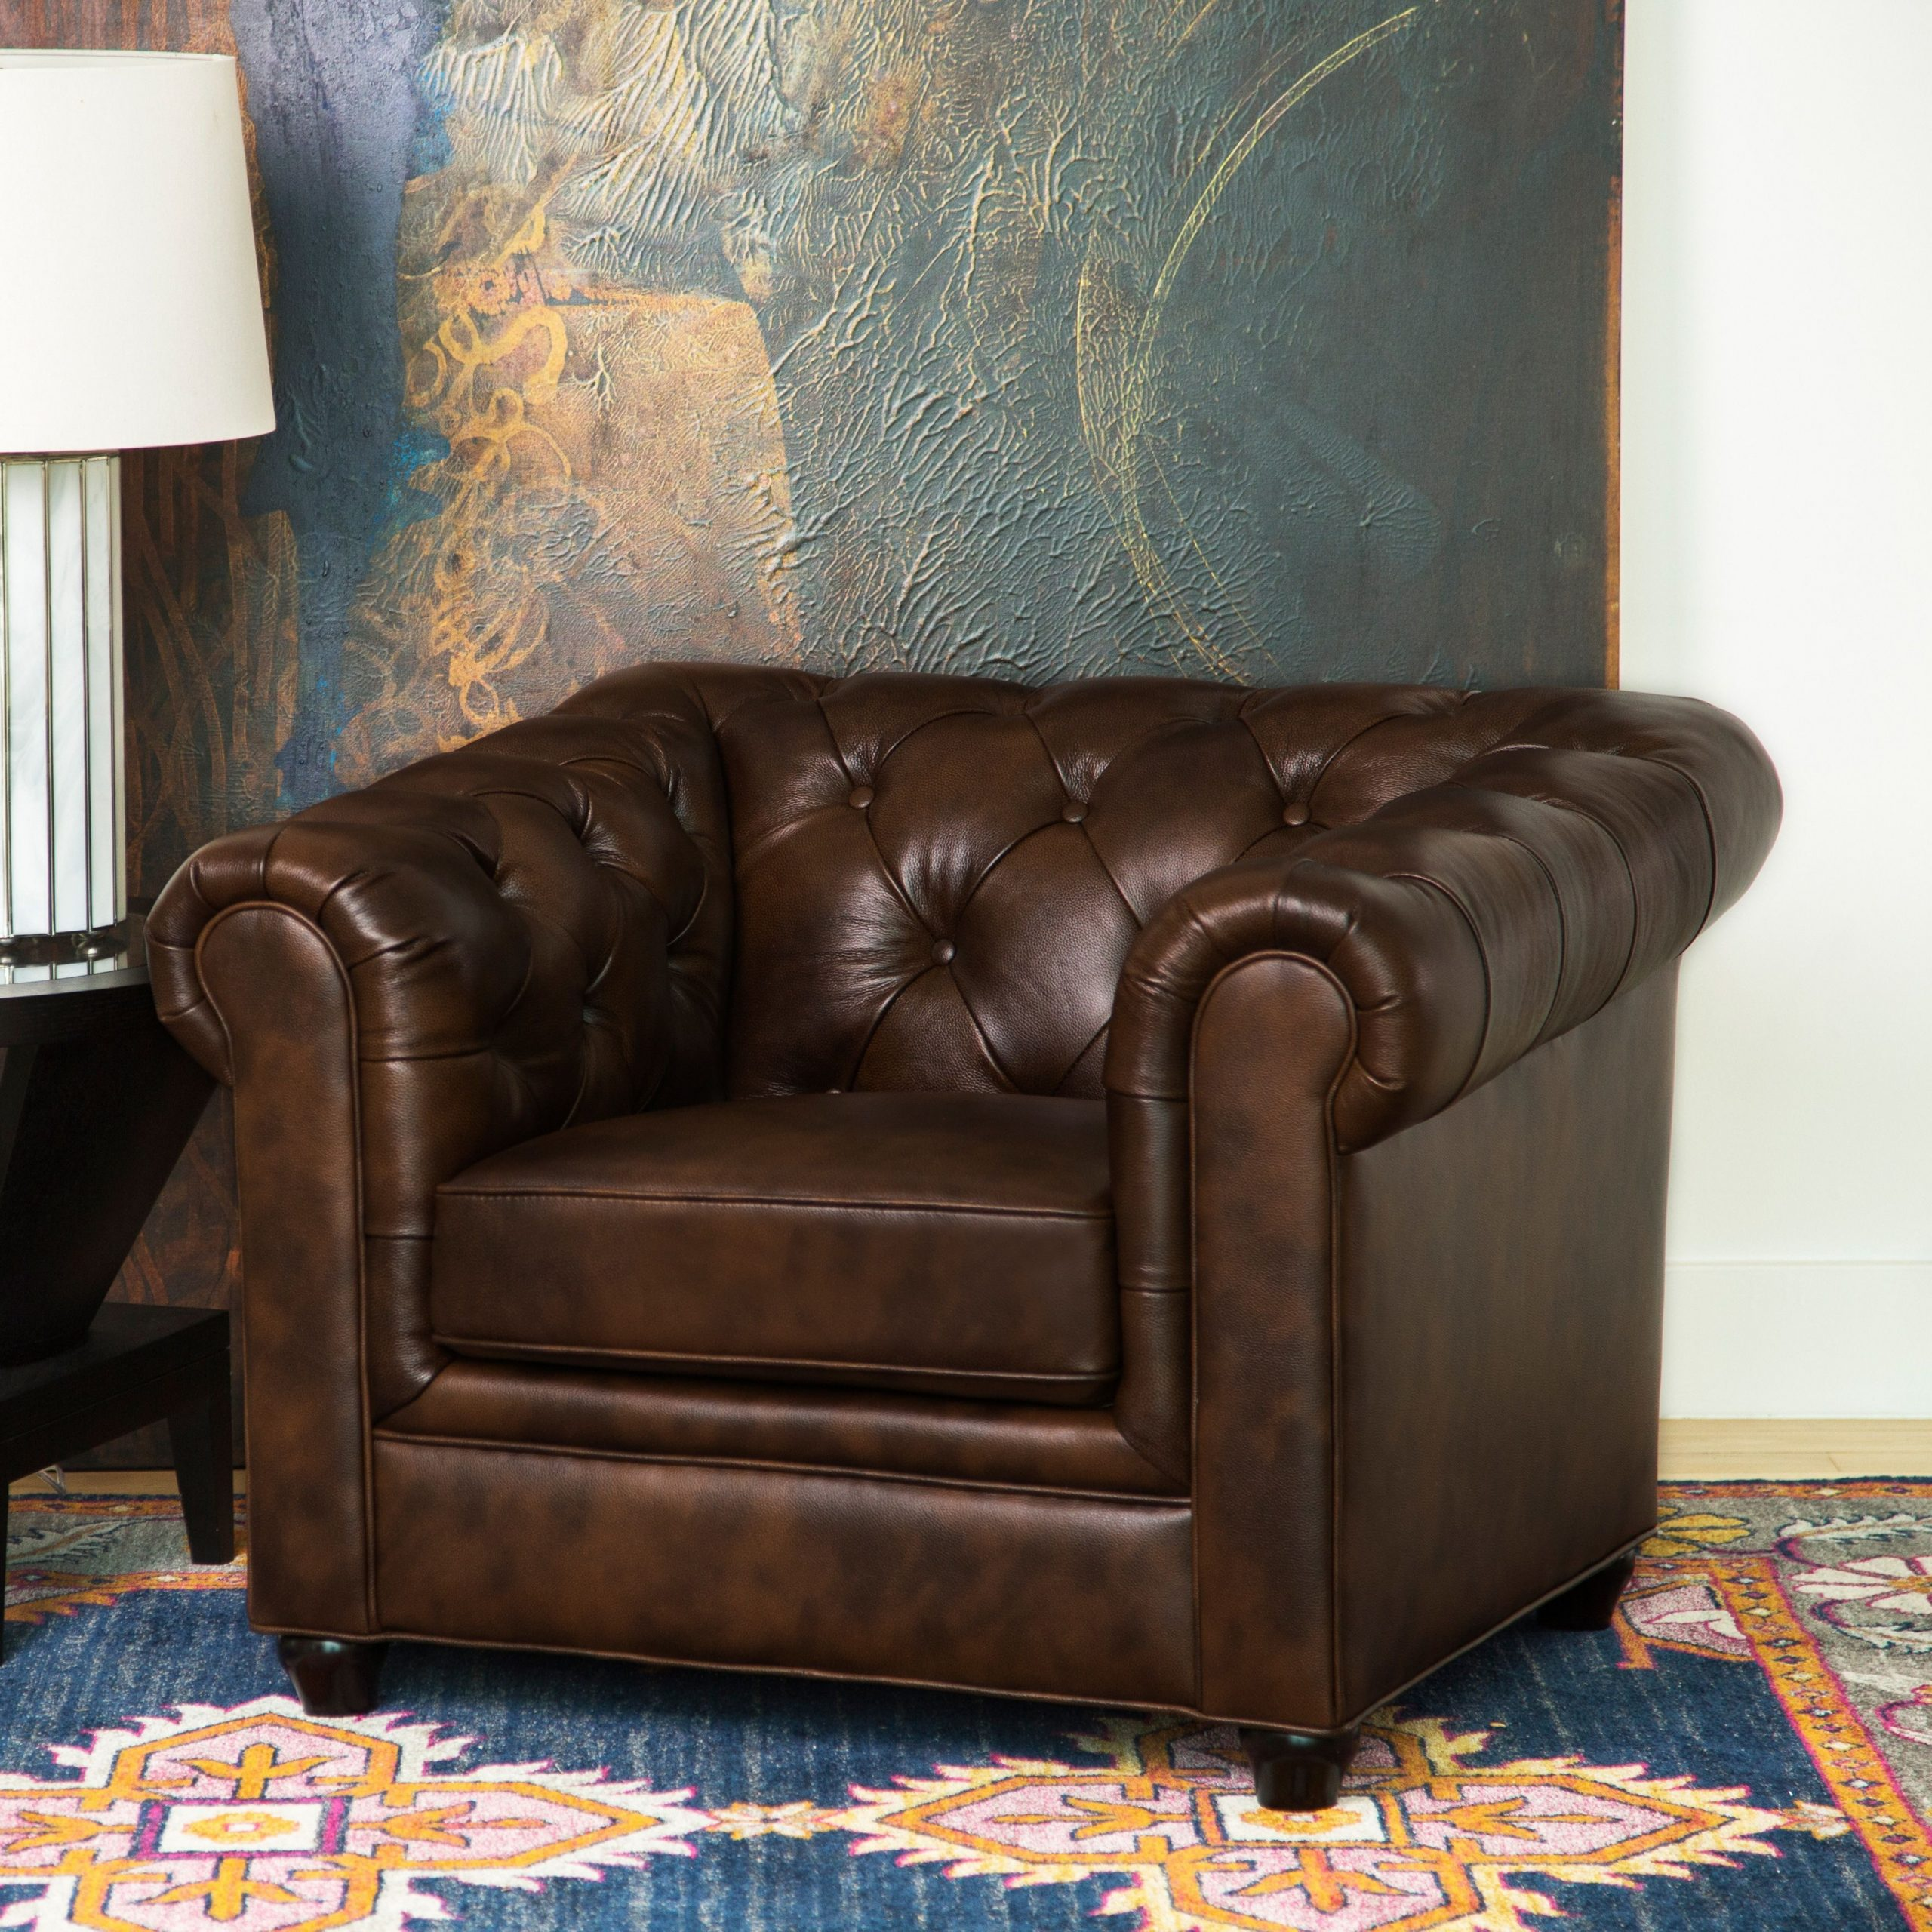 Overstock: Online Shopping – Bedding, Furniture Within 2020 Sheldon Tufted Top Grain Leather Club Chairs (View 13 of 20)